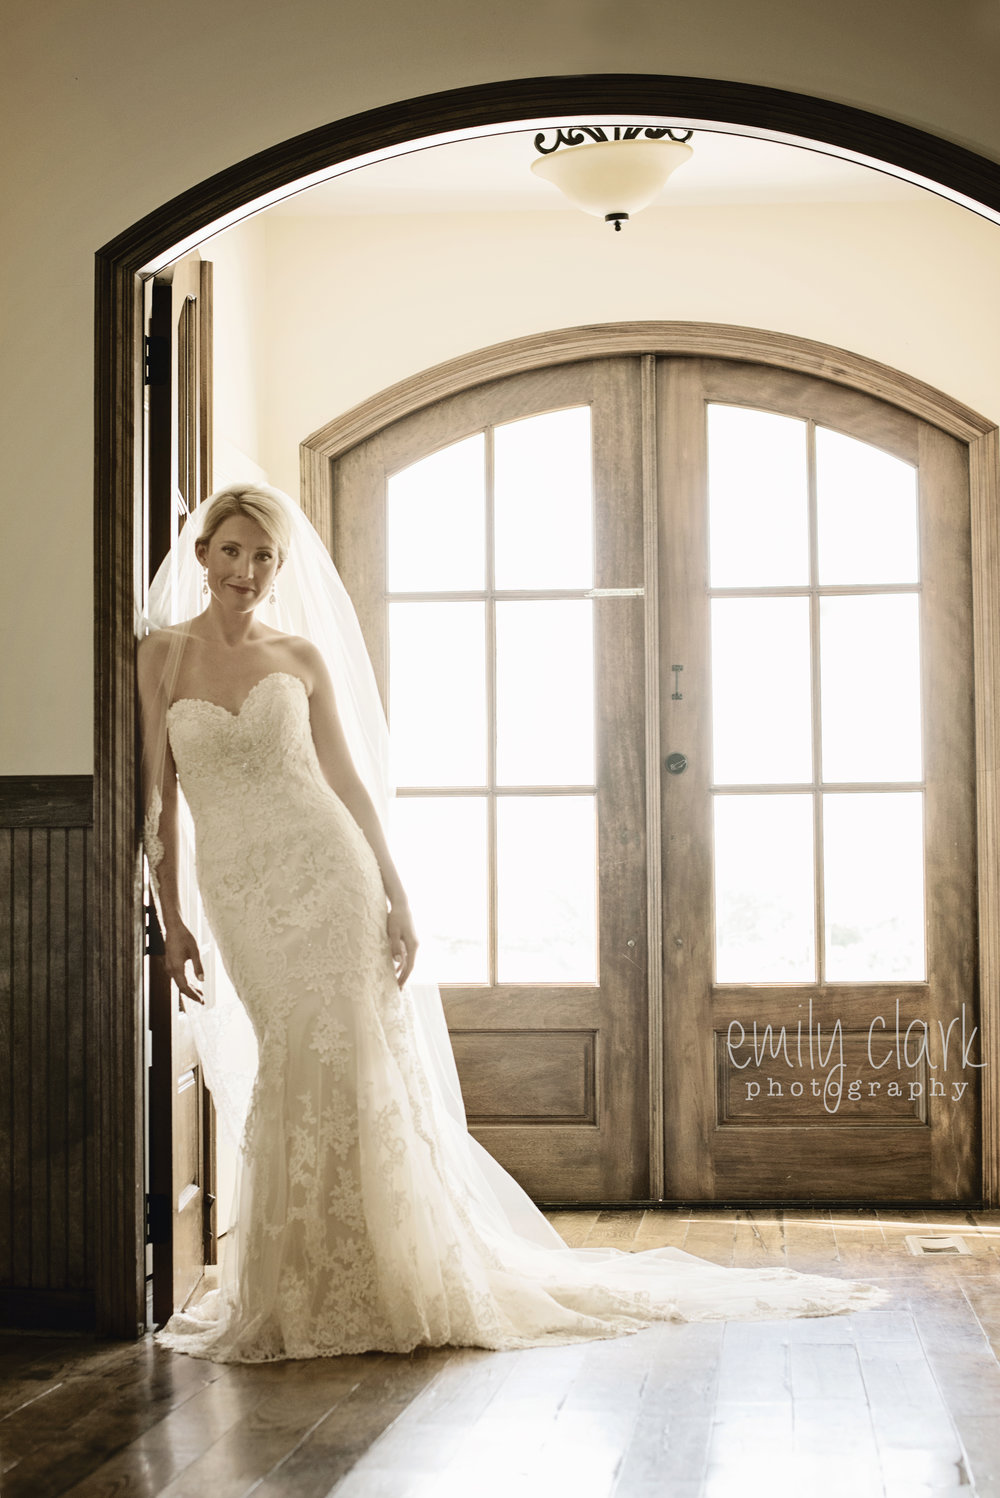 weddings emily clark photography thank you for considering me for your wedding photography truly thank you